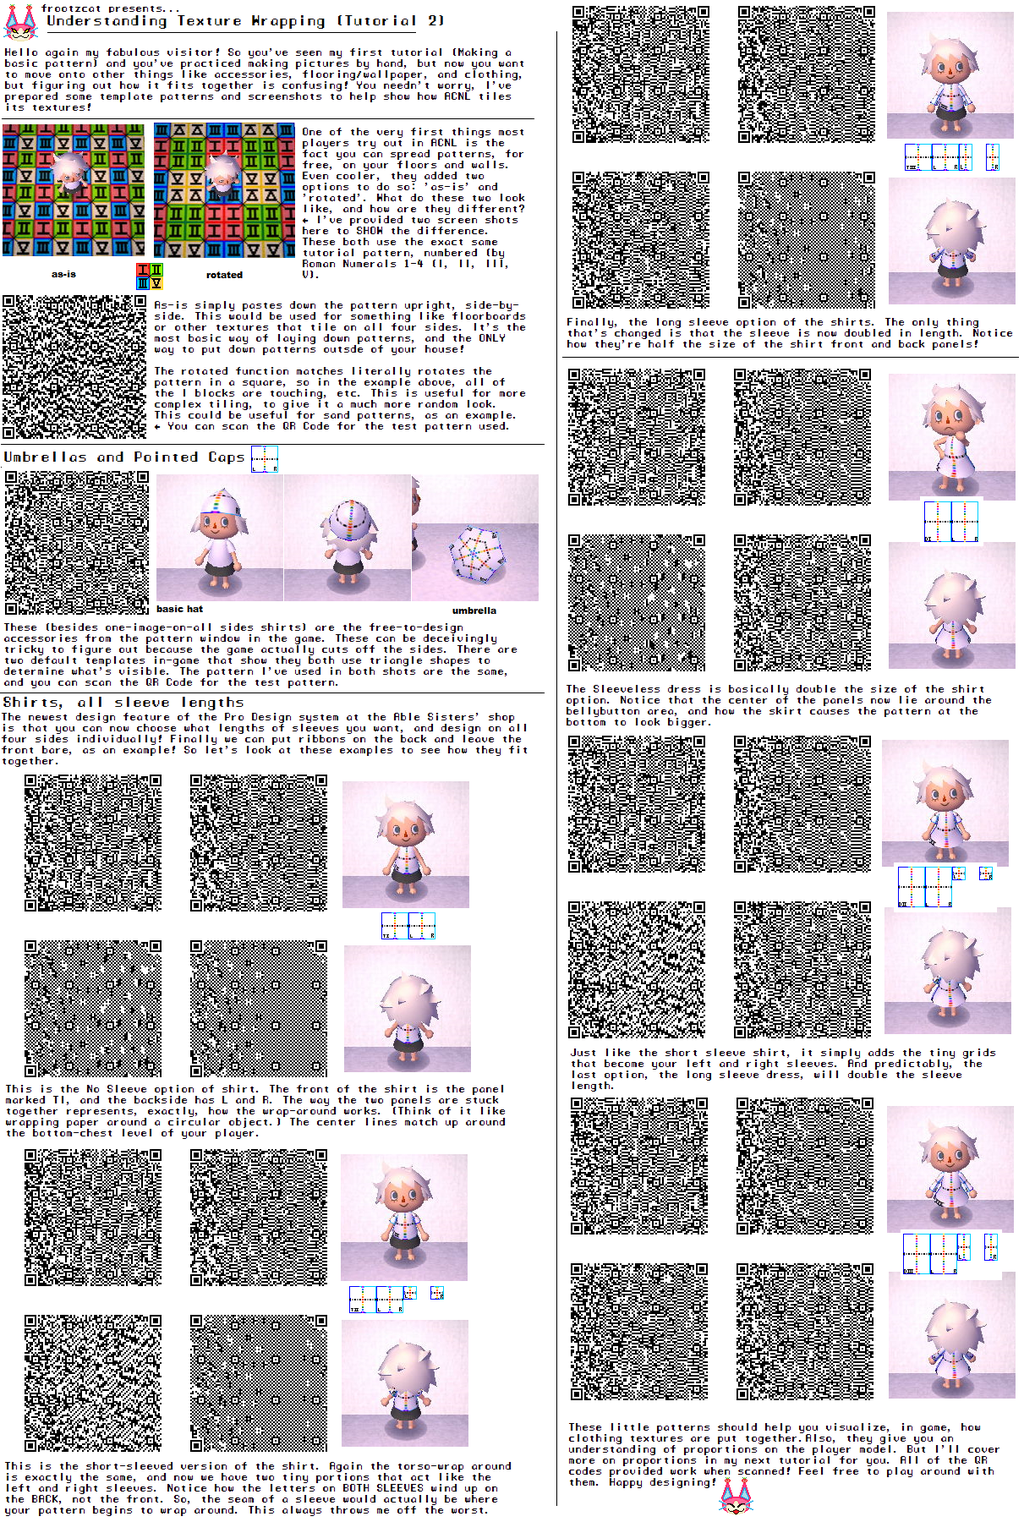 Free Download Acnl Tutorial Texture Wrapping By Frootzcat